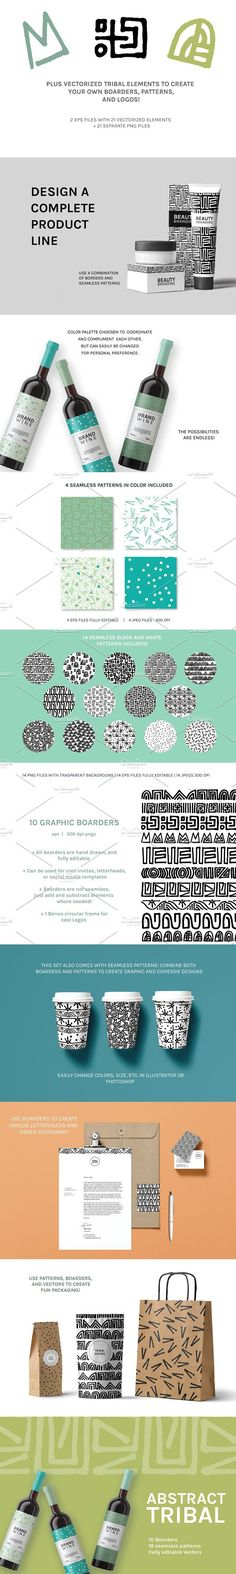 Abstract Tribal | Boarders   Design